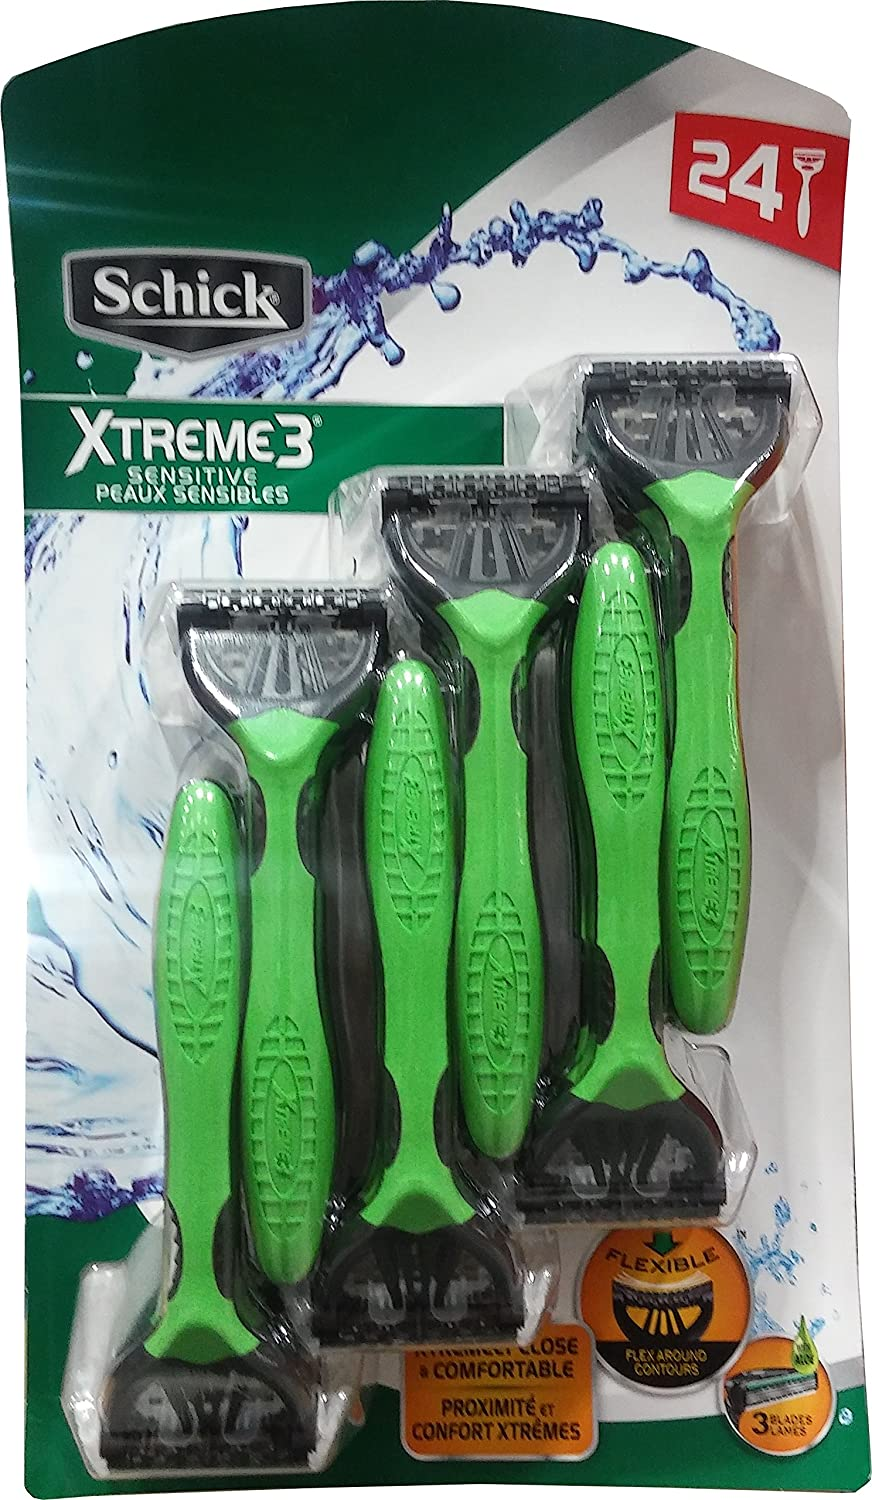 Schick Xtreme 3 Blade Razor for Sensitive Skin, pack of 24